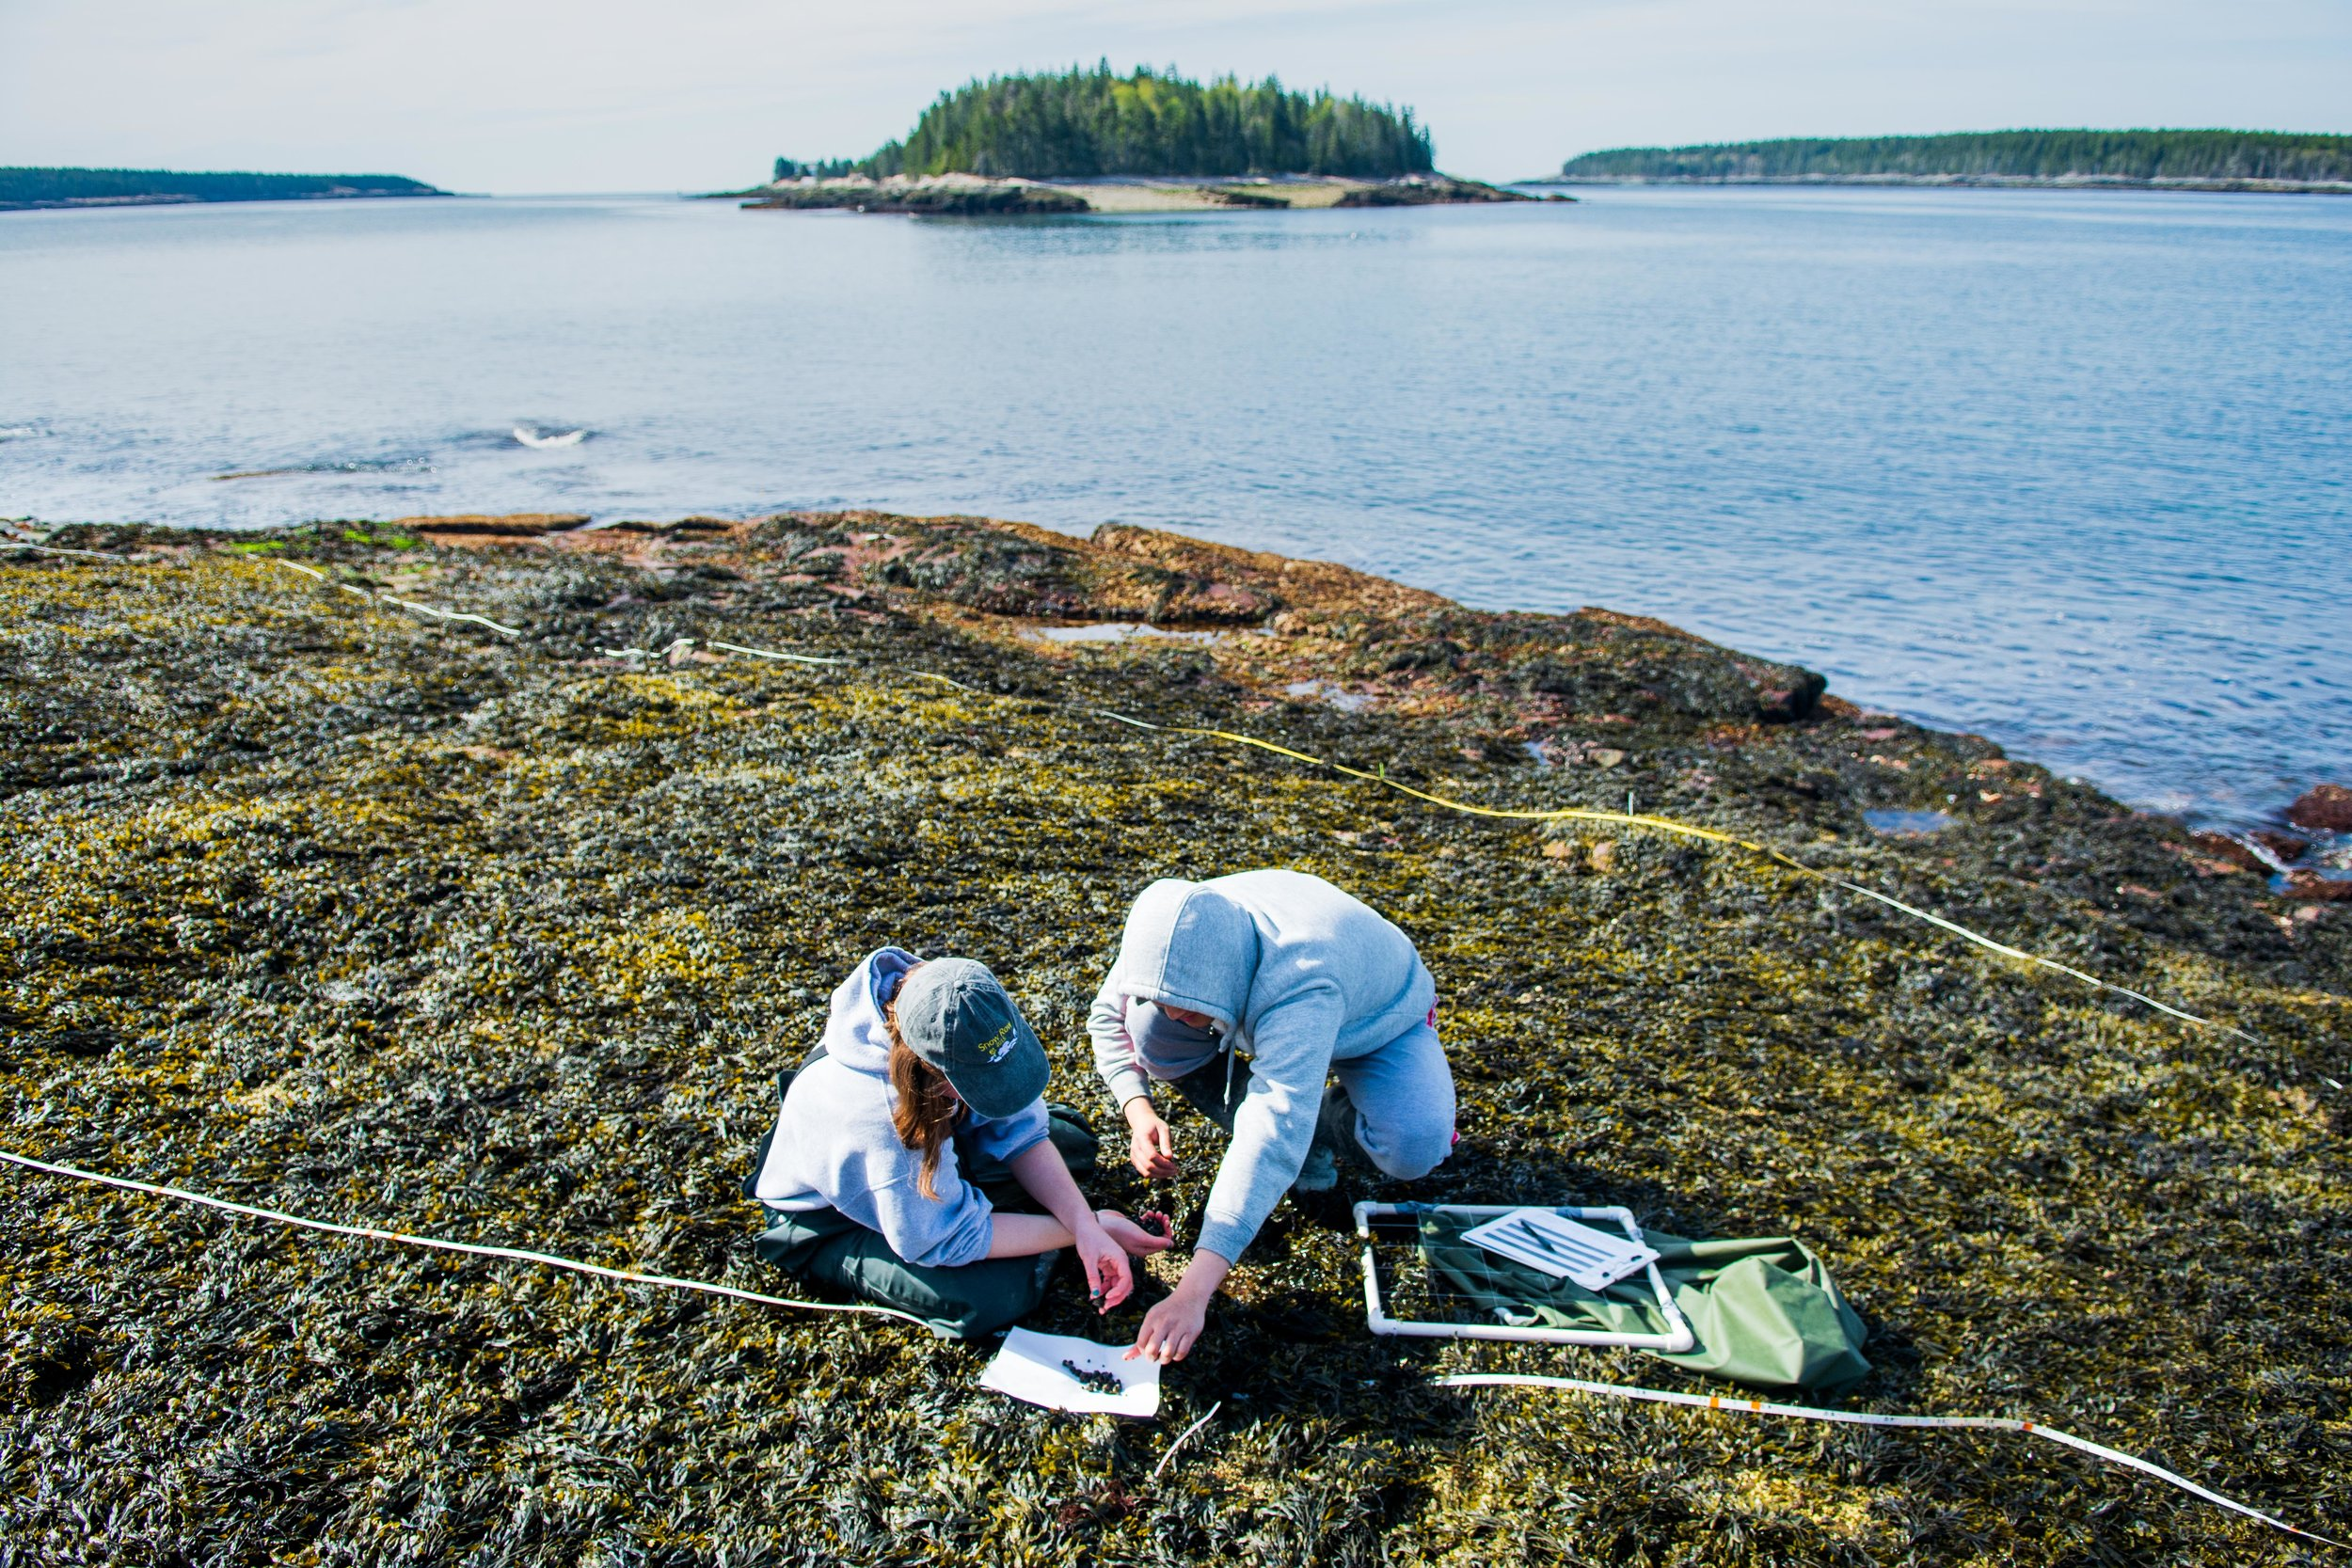 Undergraduate researcher Sahana Simonetti and Senior Lab Technician Francis Choi conduct a biodiversity survey in Winter Harbor, Maine.